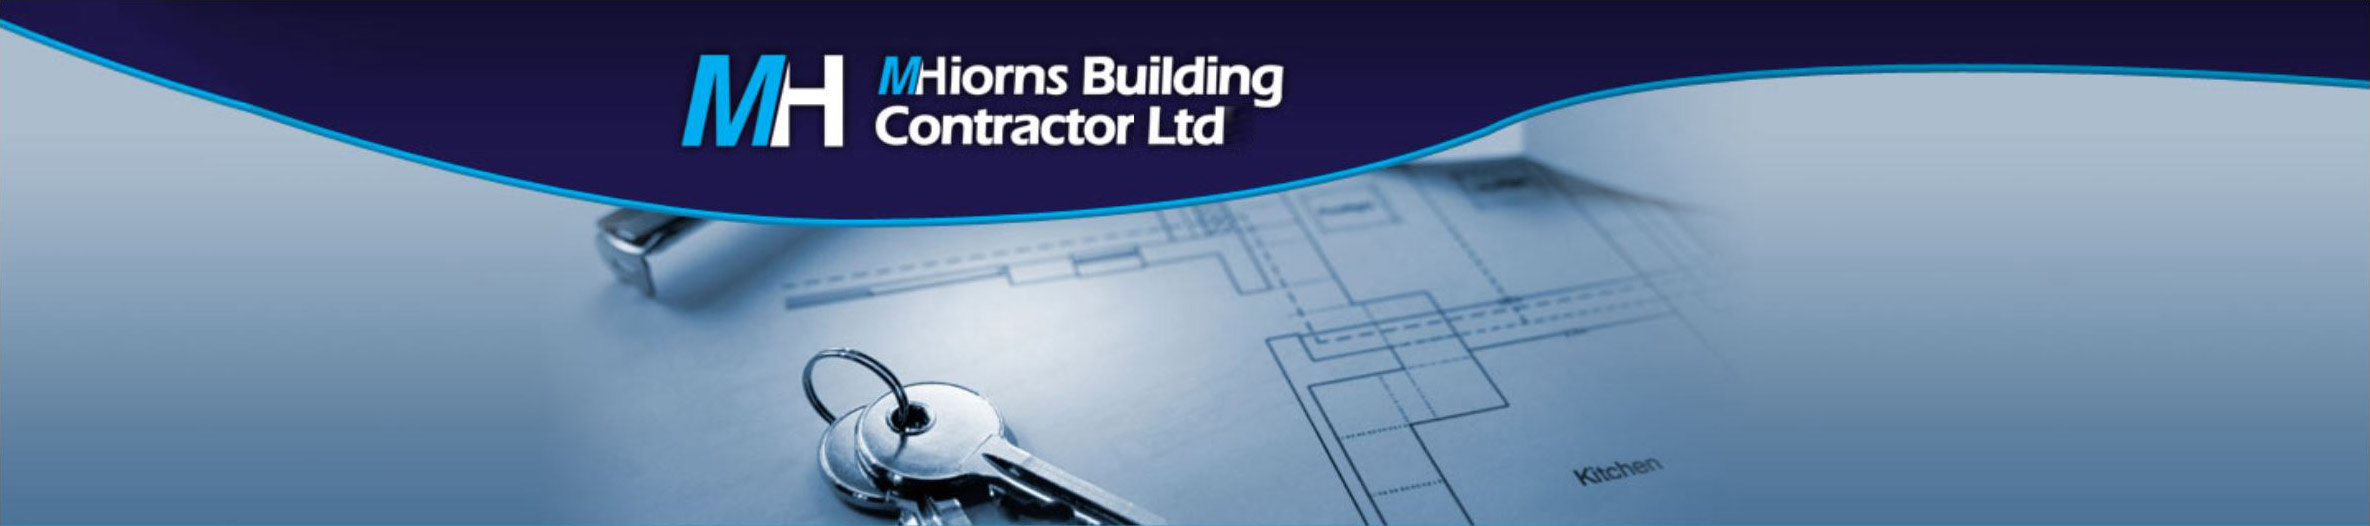 Mike Hiorns Building Contractor